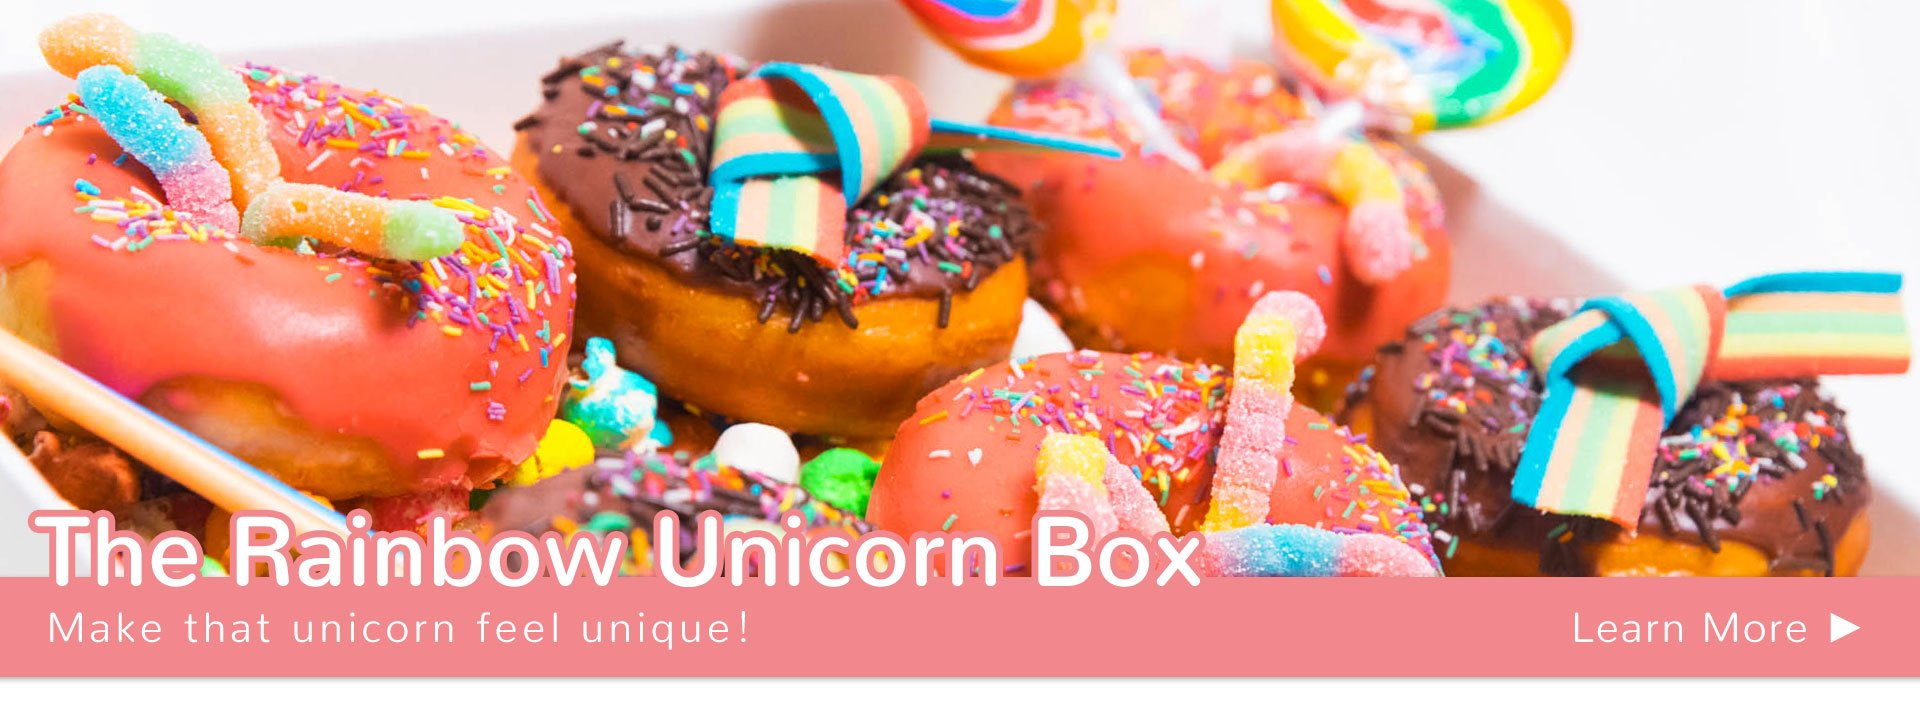 Rainbow Unicorn Box